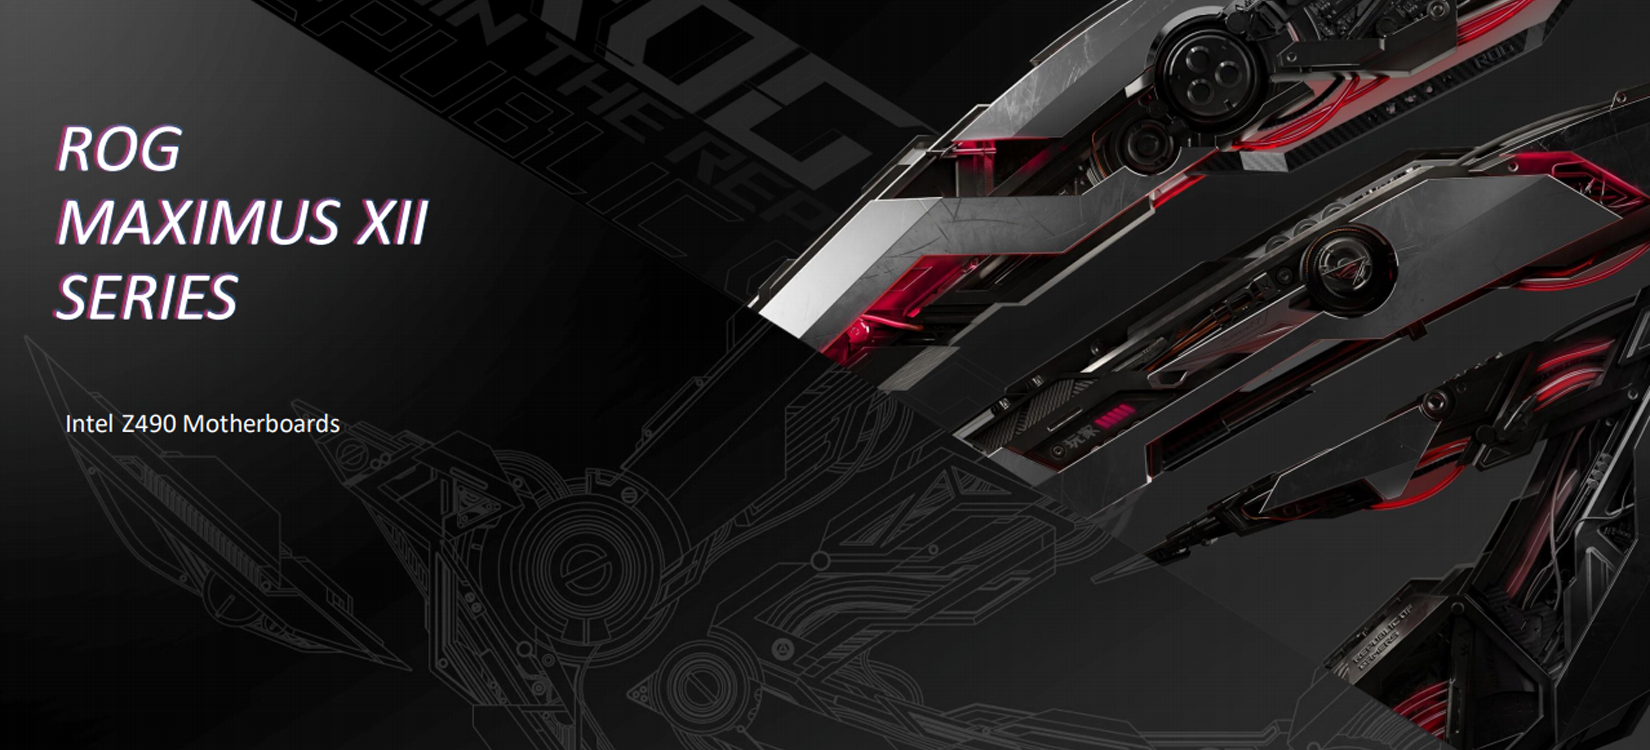 Mainboard ASUS ROG MAXIMUS XII EXTREME (Intel Z490, Socket 1200, E-ATX, 4 khe RAM DDR4)